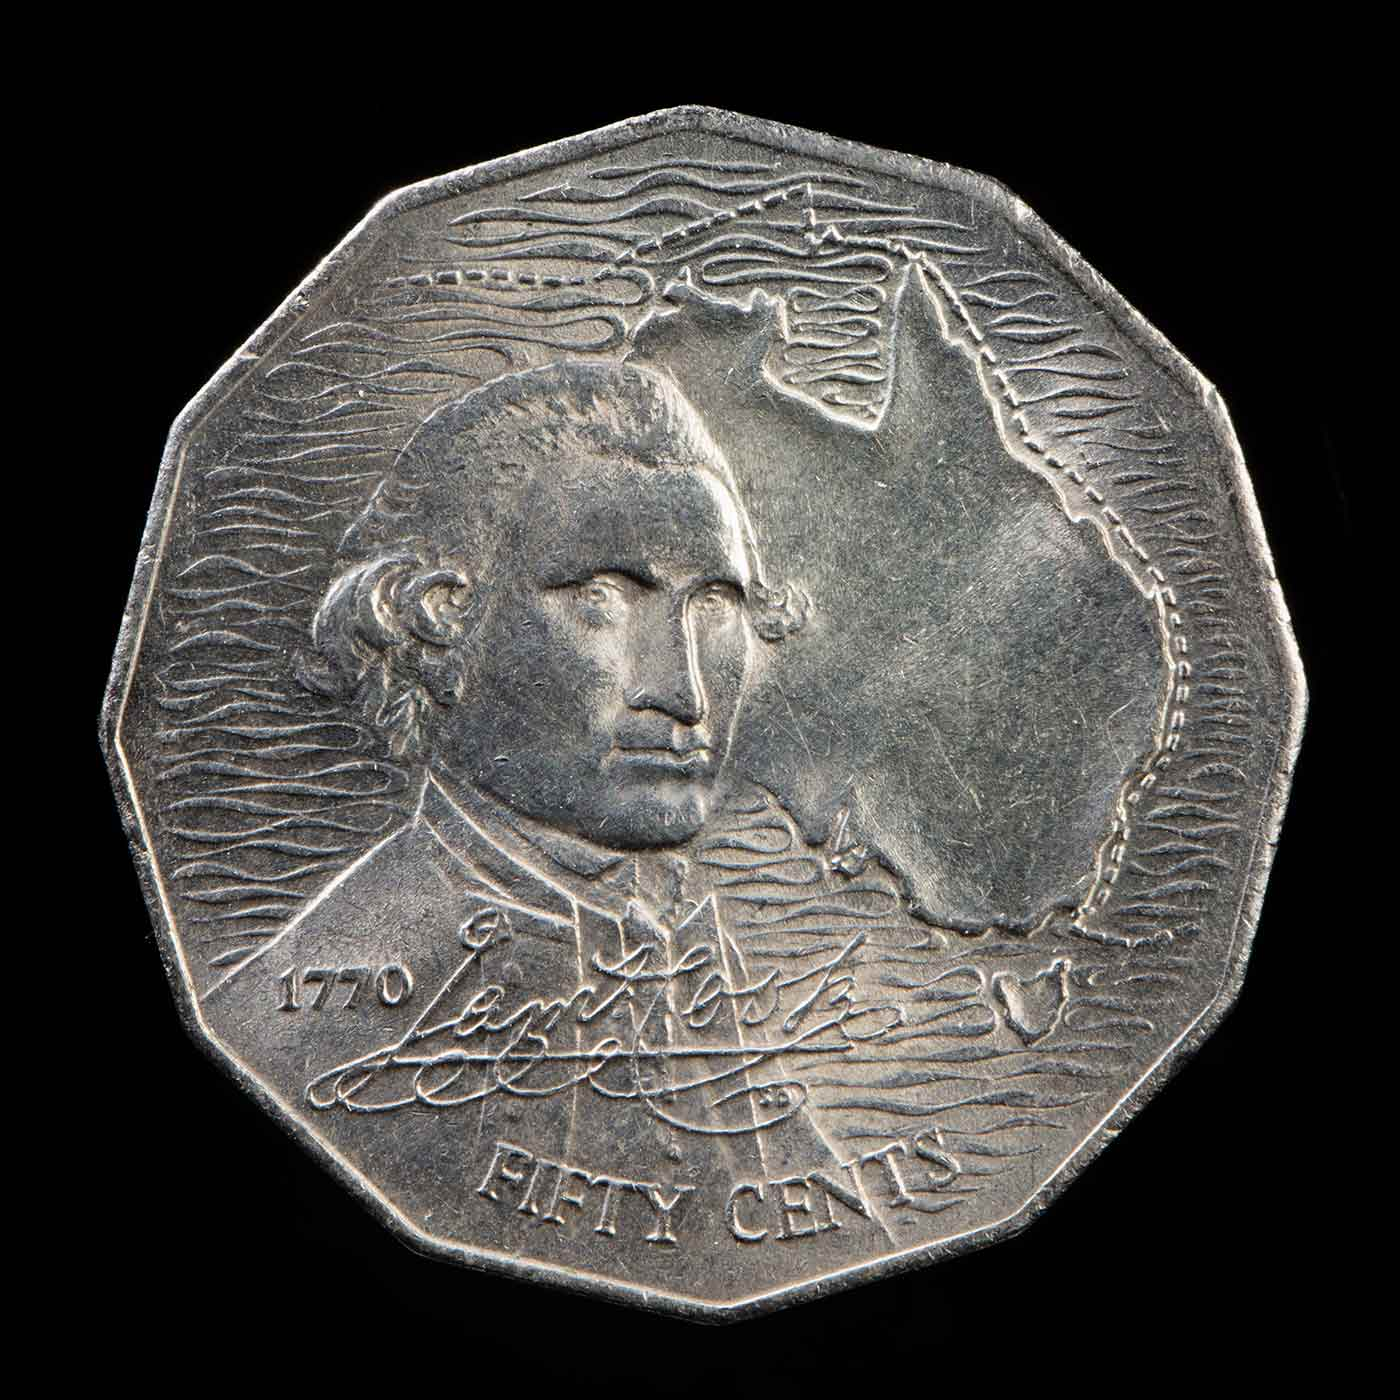 An Australian 50 cent coin with a picture of the map of Australia and the bust of Captain James Cook. The text '1770' then his signature and 'FIFTY CENTS' is located over the lower half of the bust. - click to view larger image